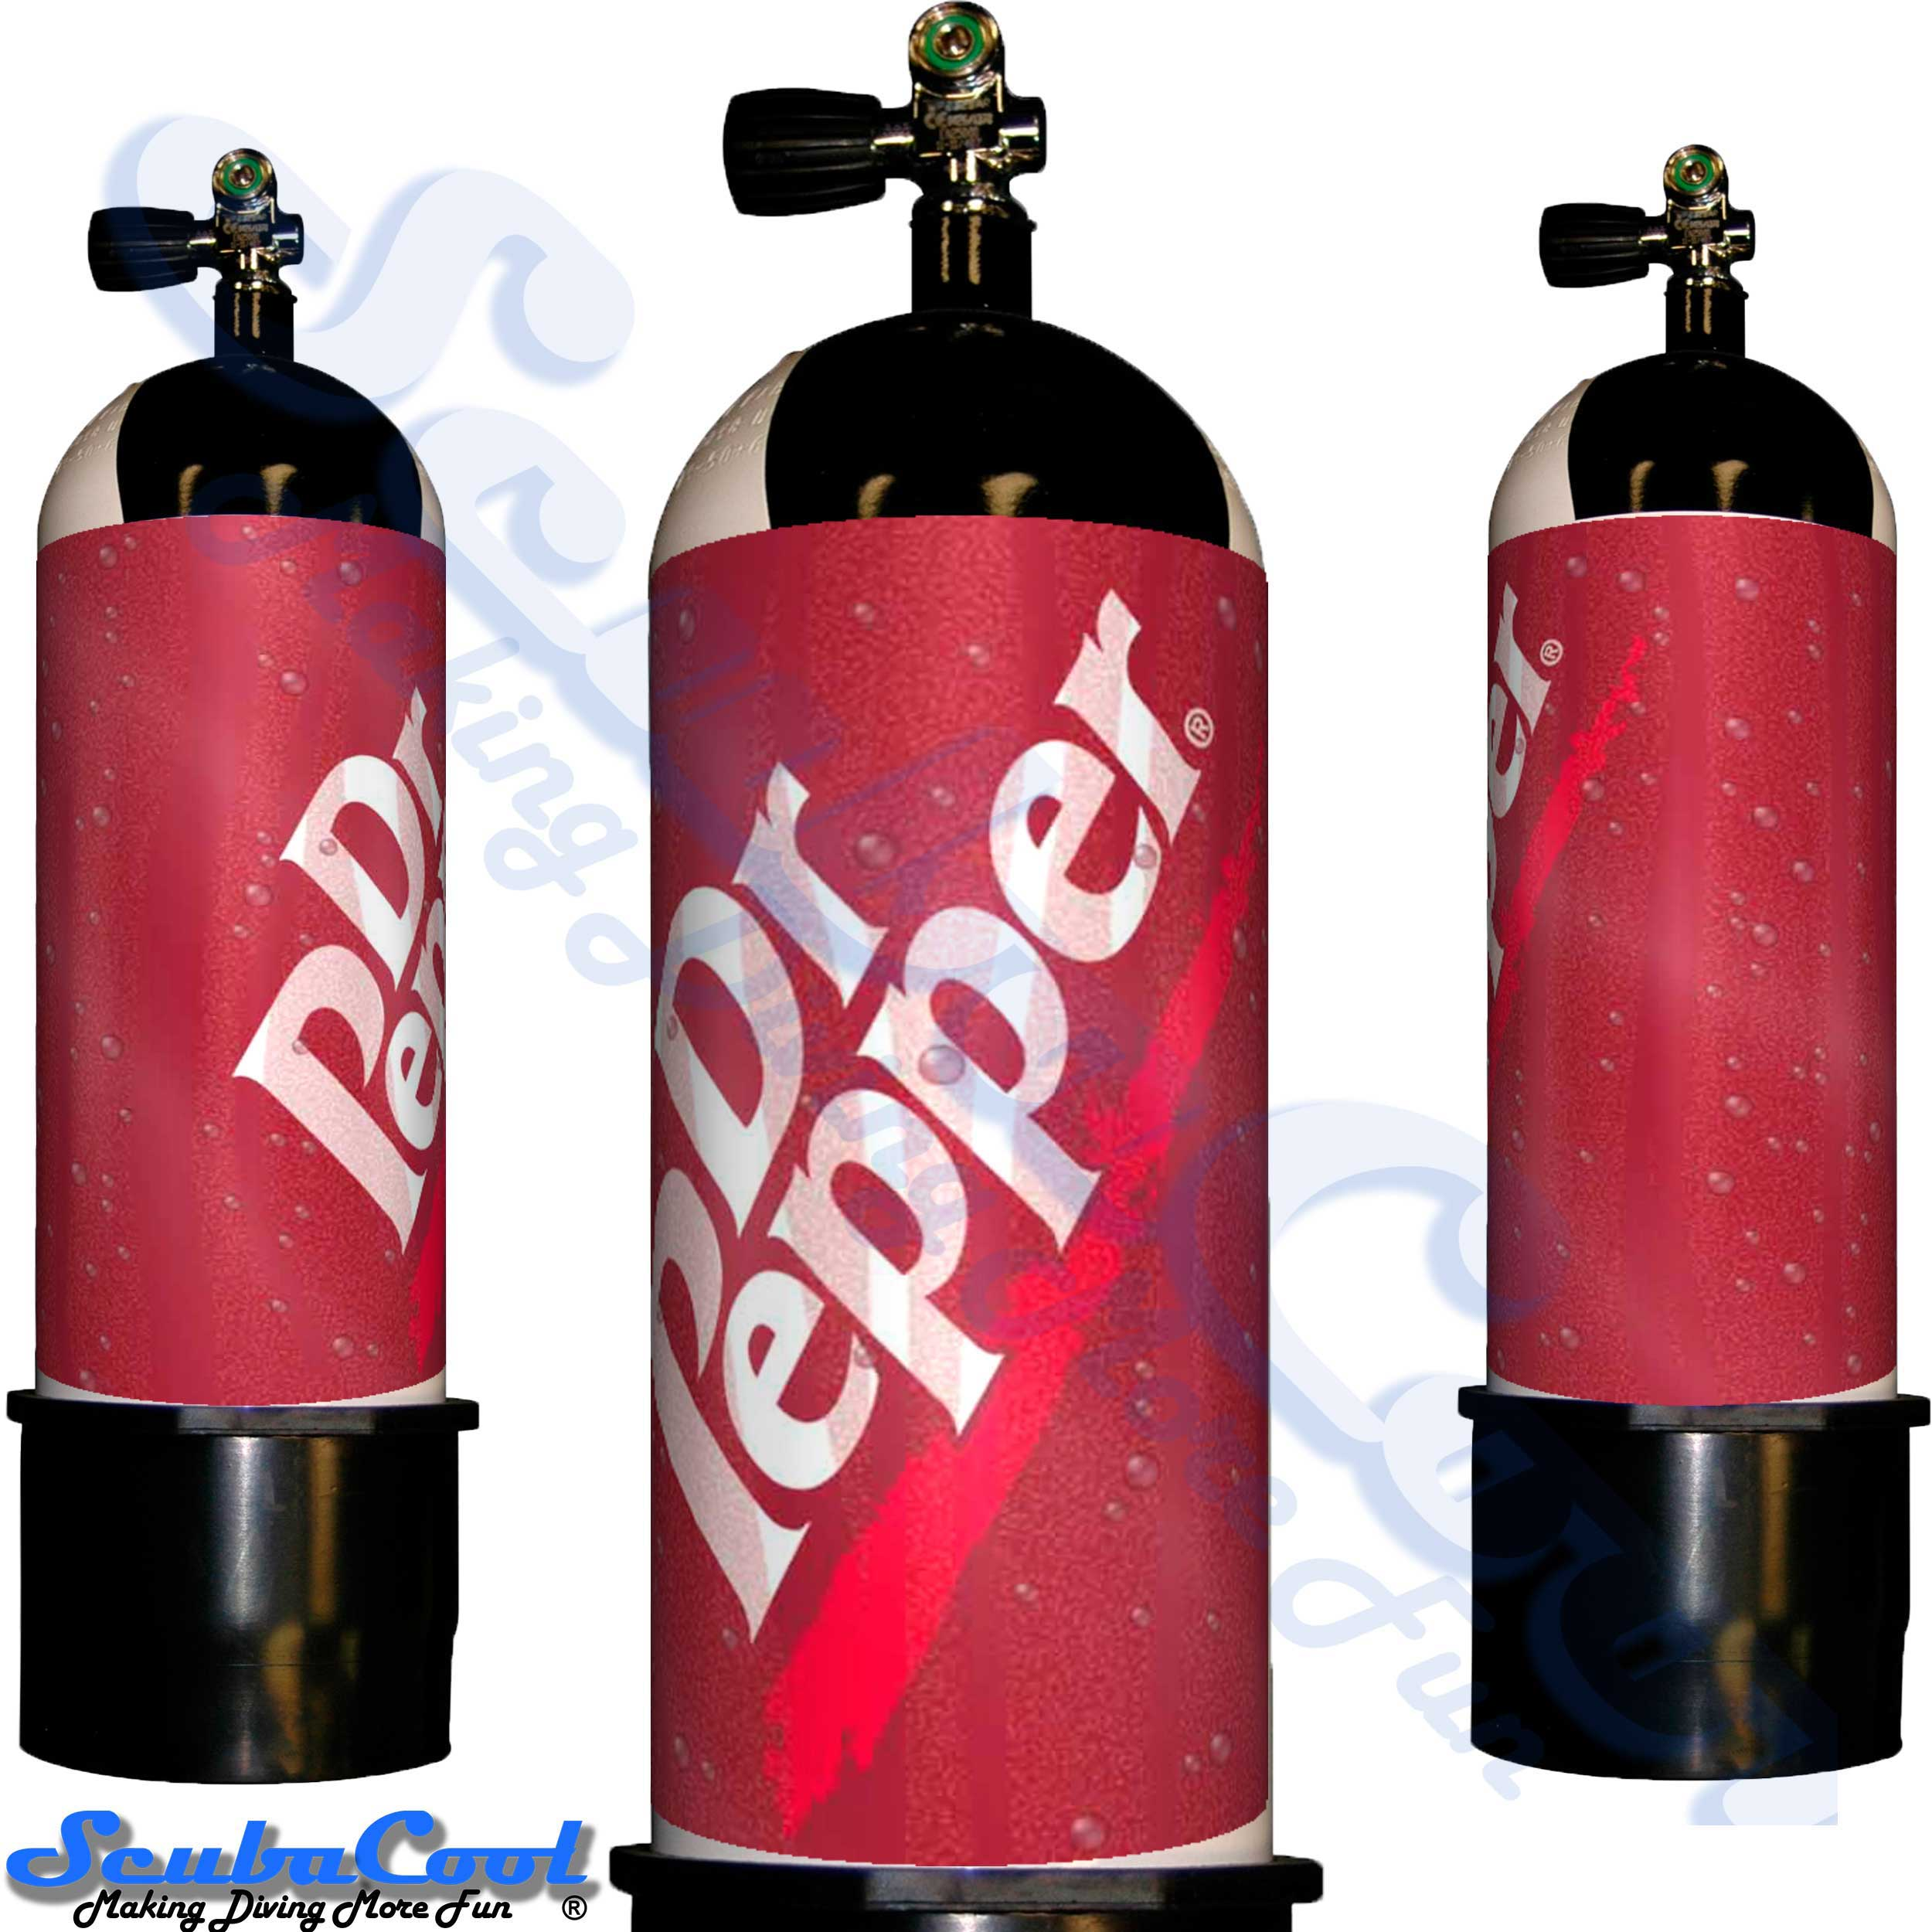 2733 Scubacool Scuba Dive Gas Cylinder Tank Cover NOT neoprene